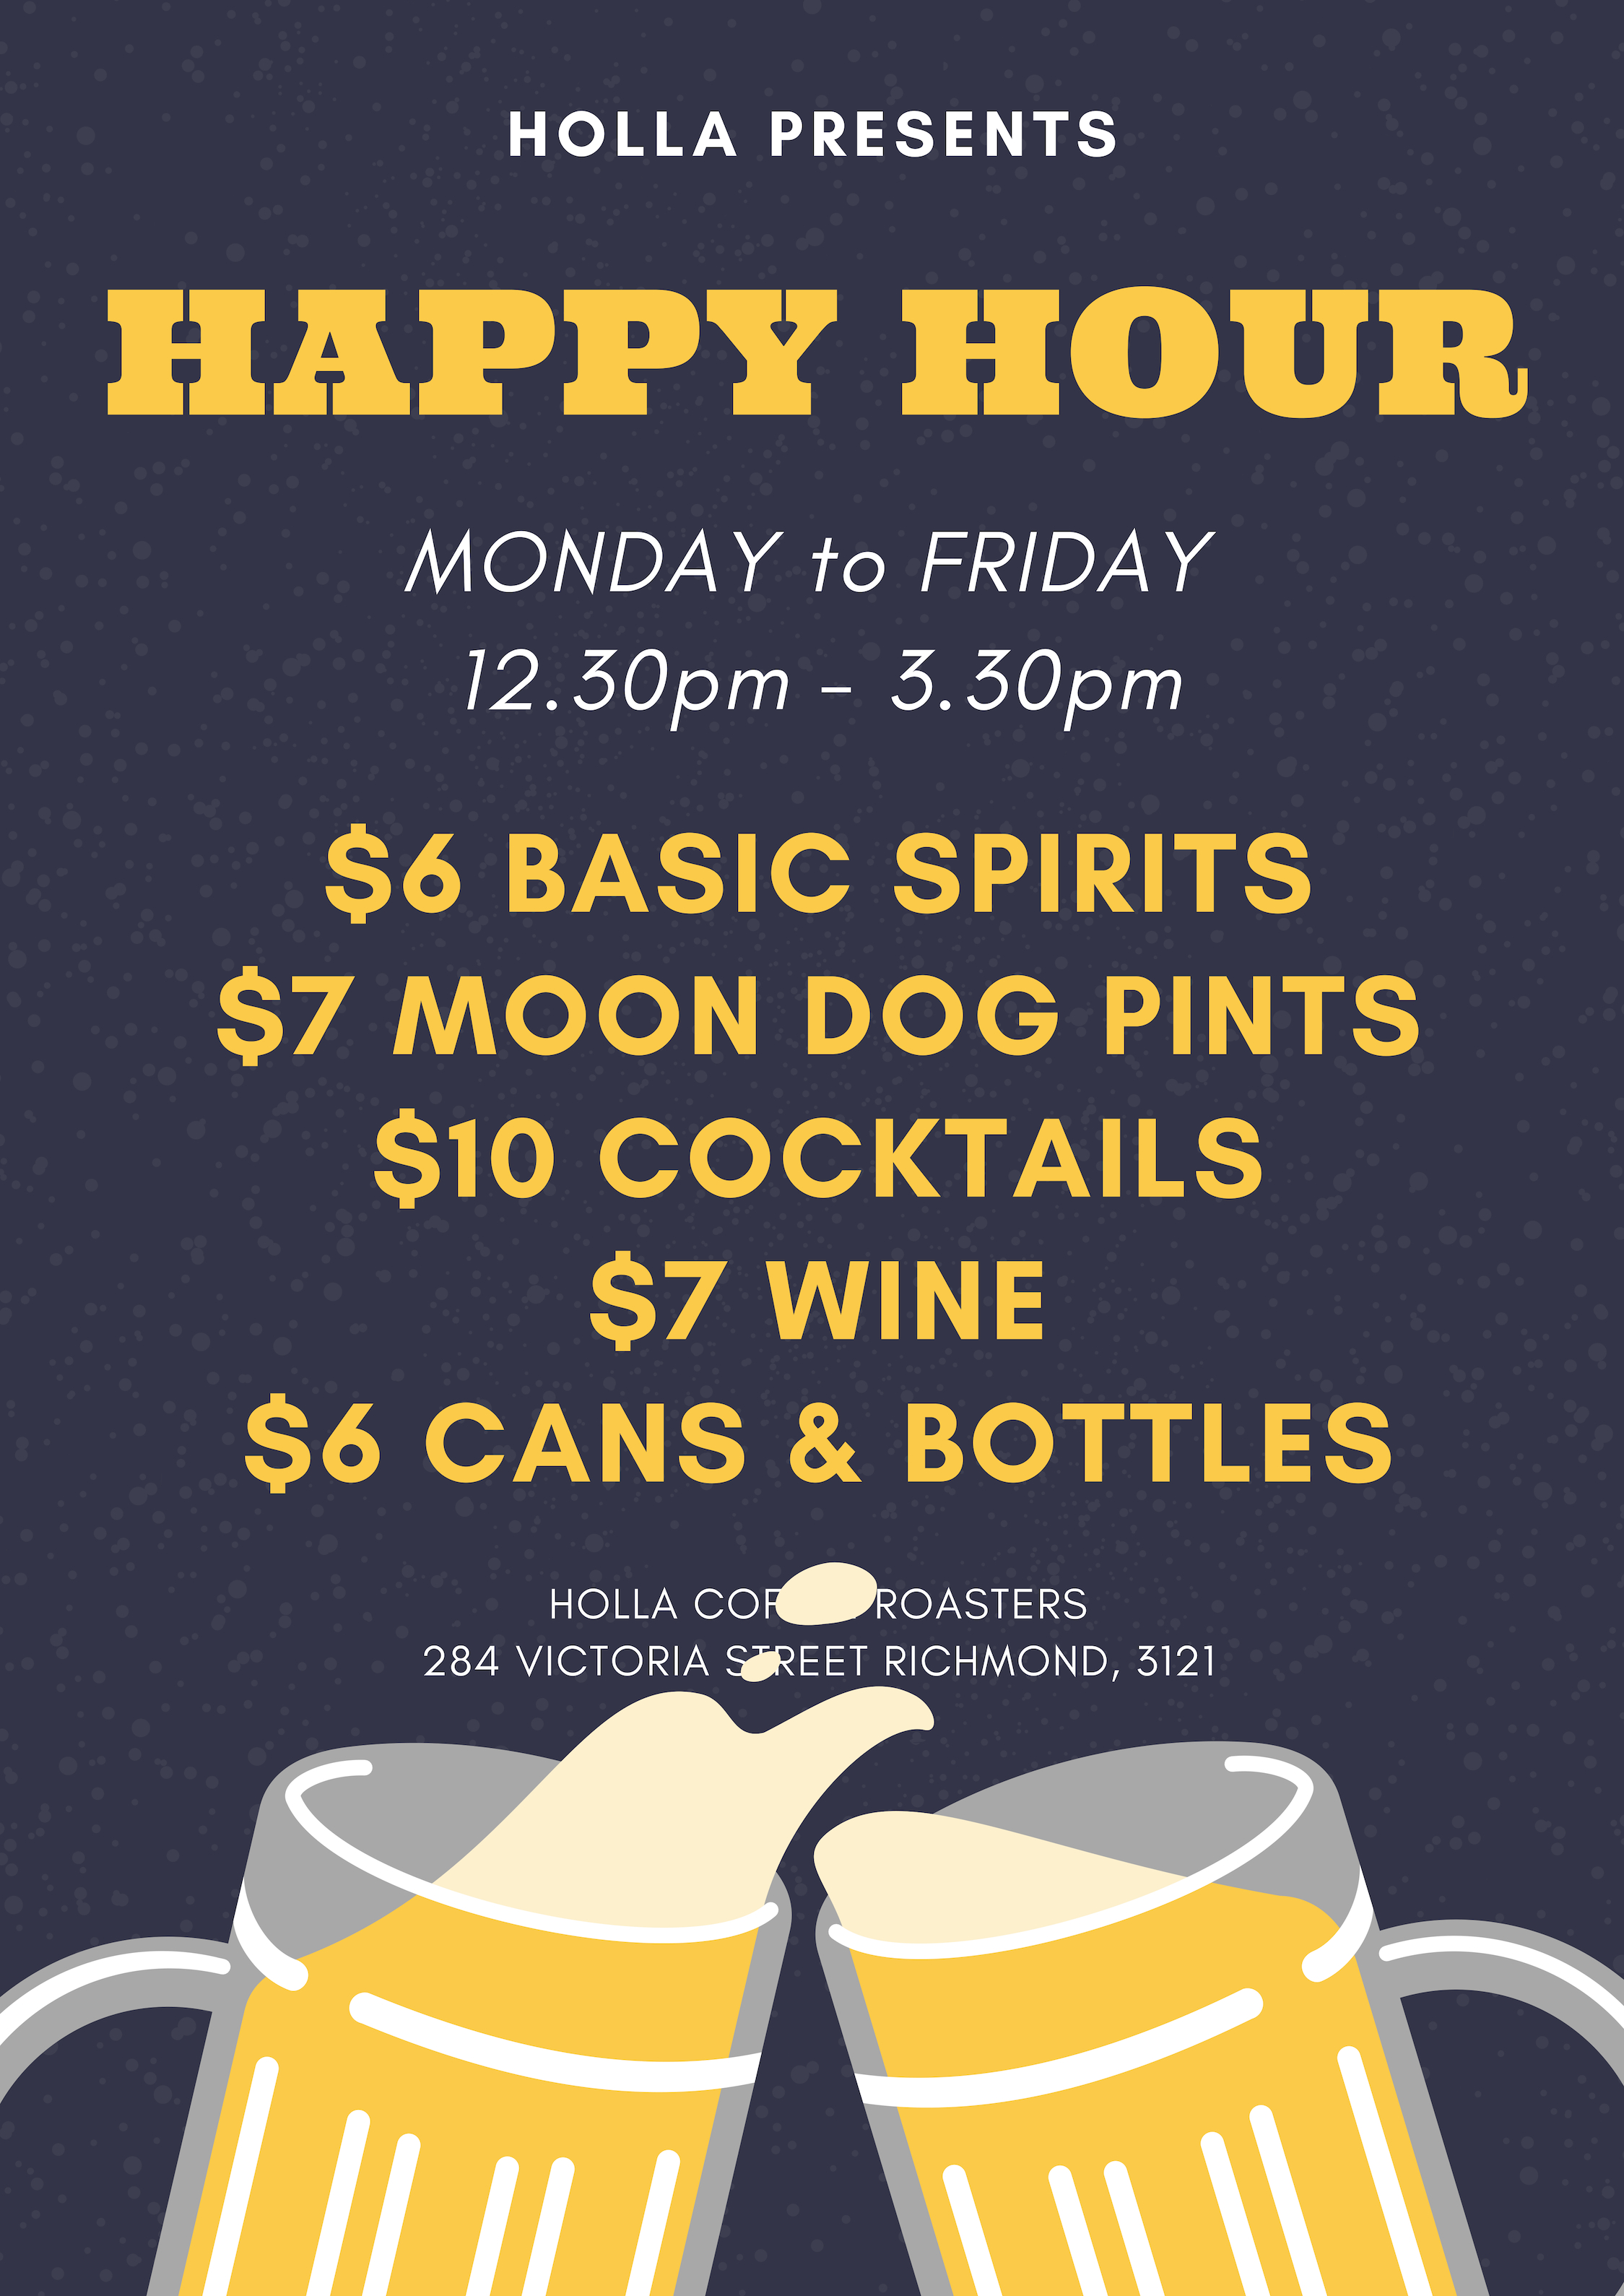 Happy Hour Every Weekday From 12.30pm - Our full cocktail menu, premium wines, spirits and Moon Dog craft beer on offer